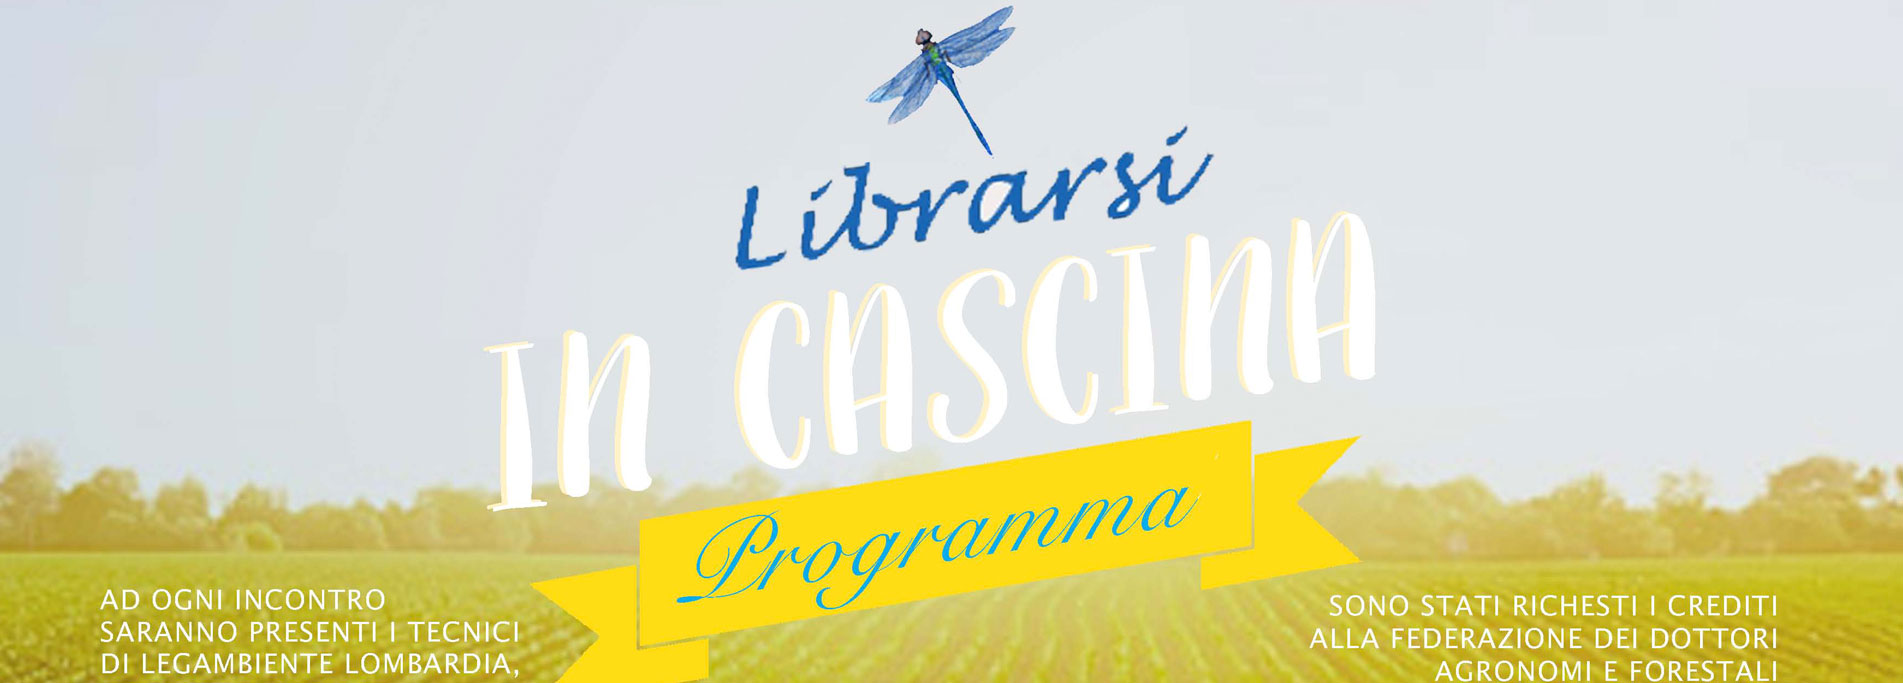 Librarsi: Cascina Forestina